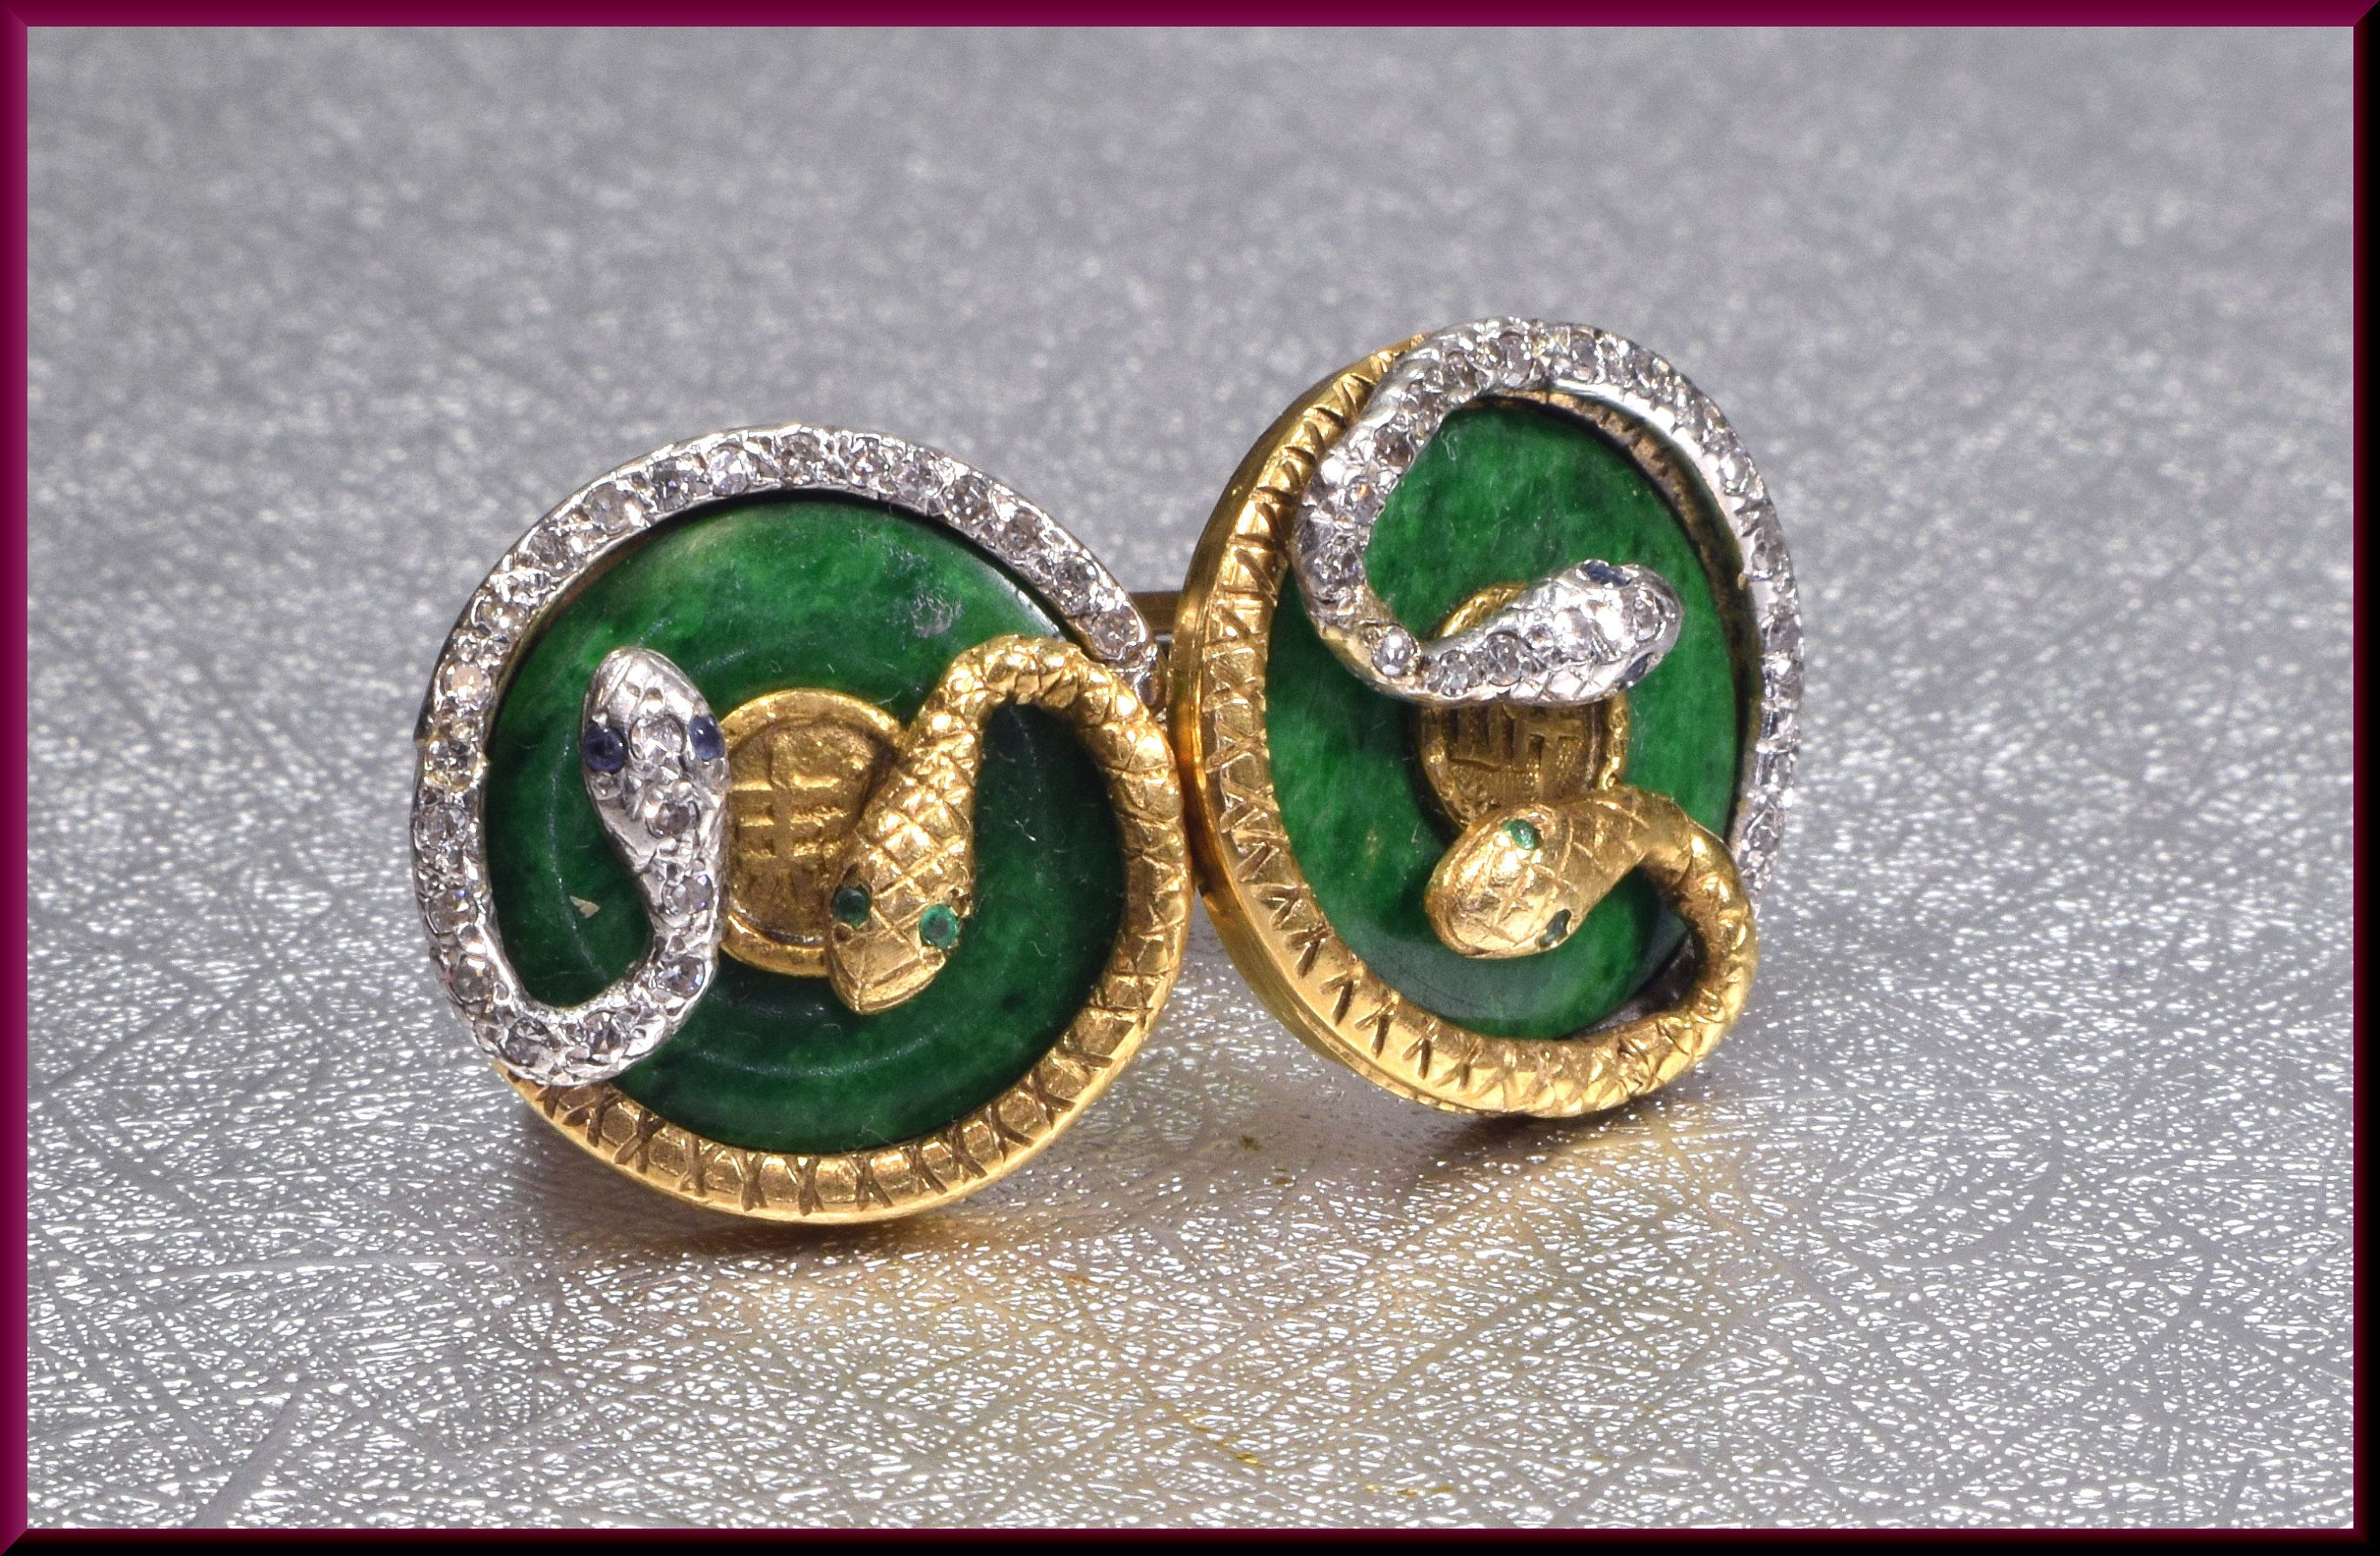 Snake Cufflinks Gold Cufflinks Jade Cufflinks Wedding Cufflinks